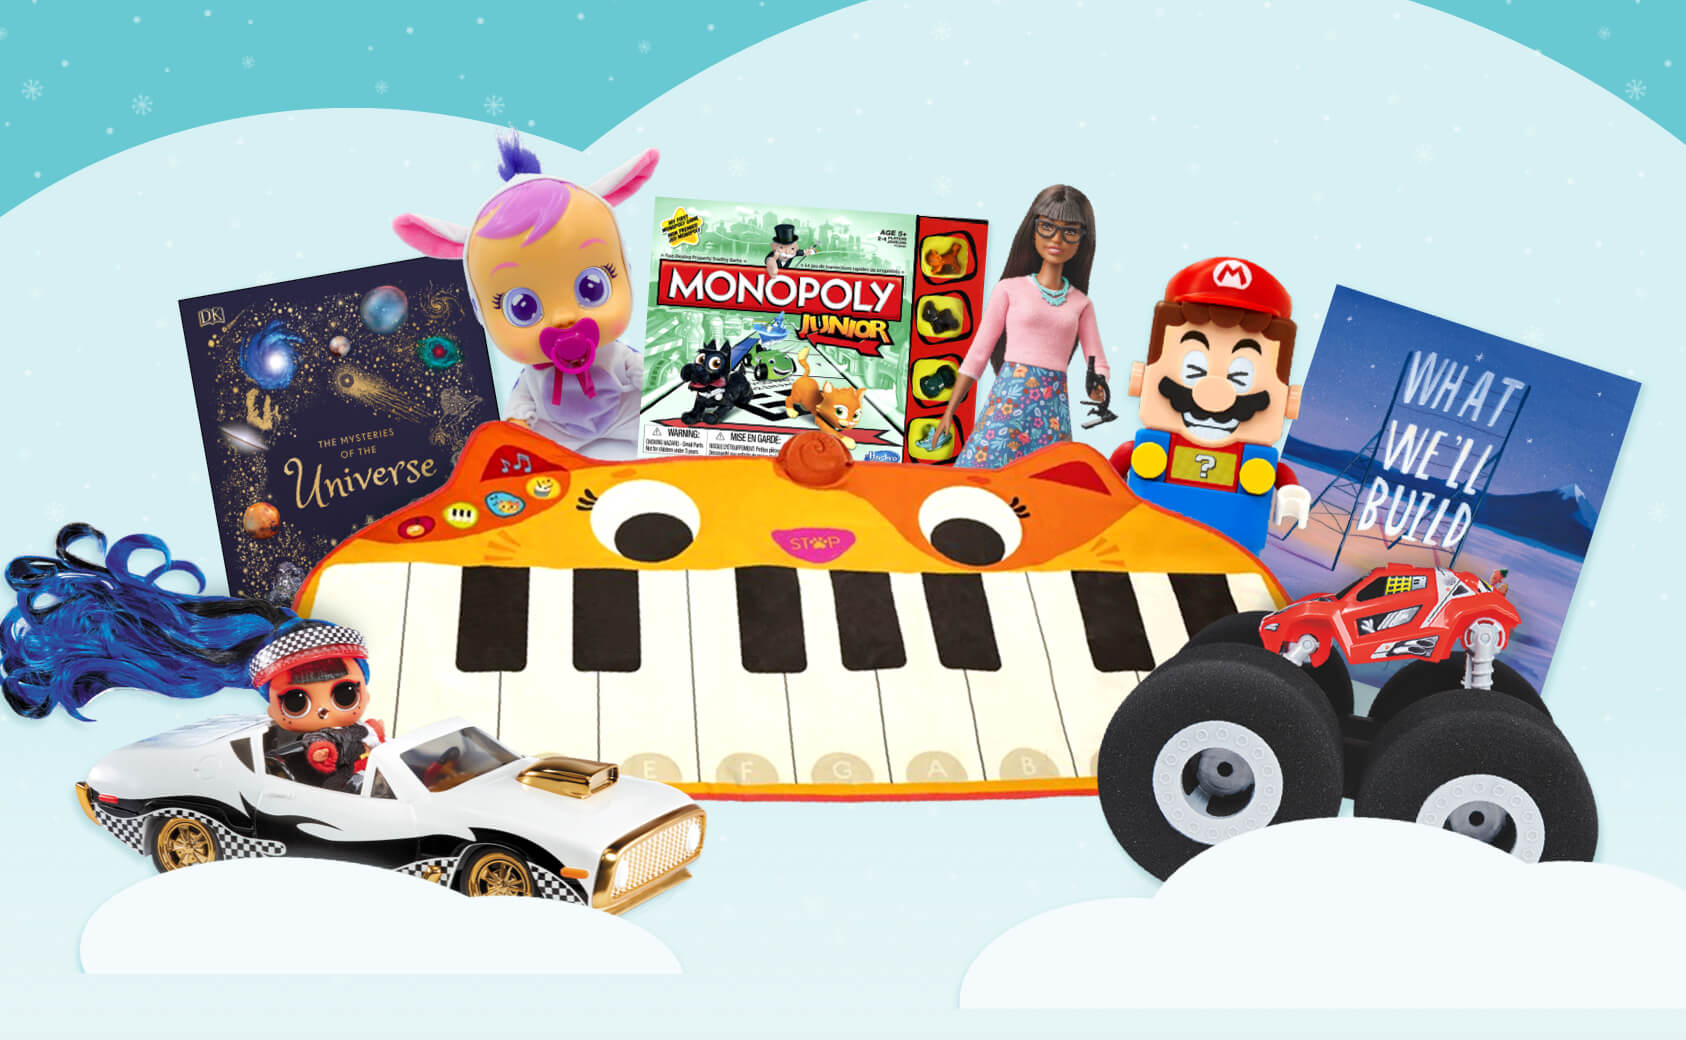 Kids Holiday Shop. From the hottest new toys to the best books and games, everything kids want this year is right here.